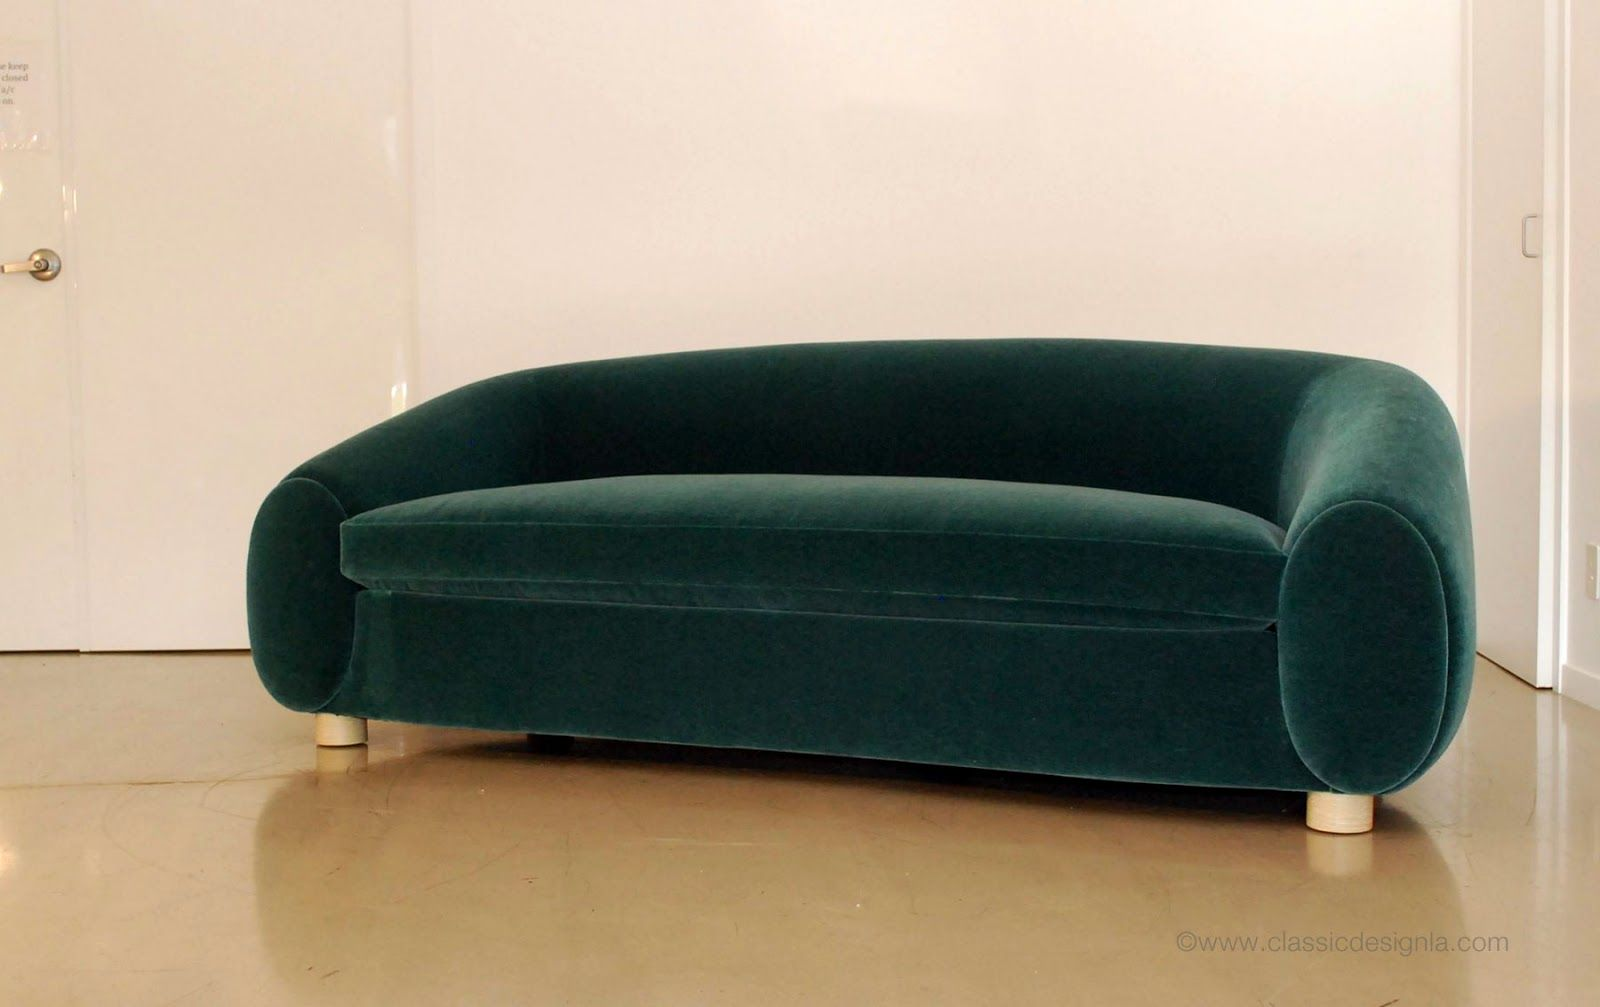 Ours Polaire Jean Royere Inspired Polar Bear Sofa Classic Design